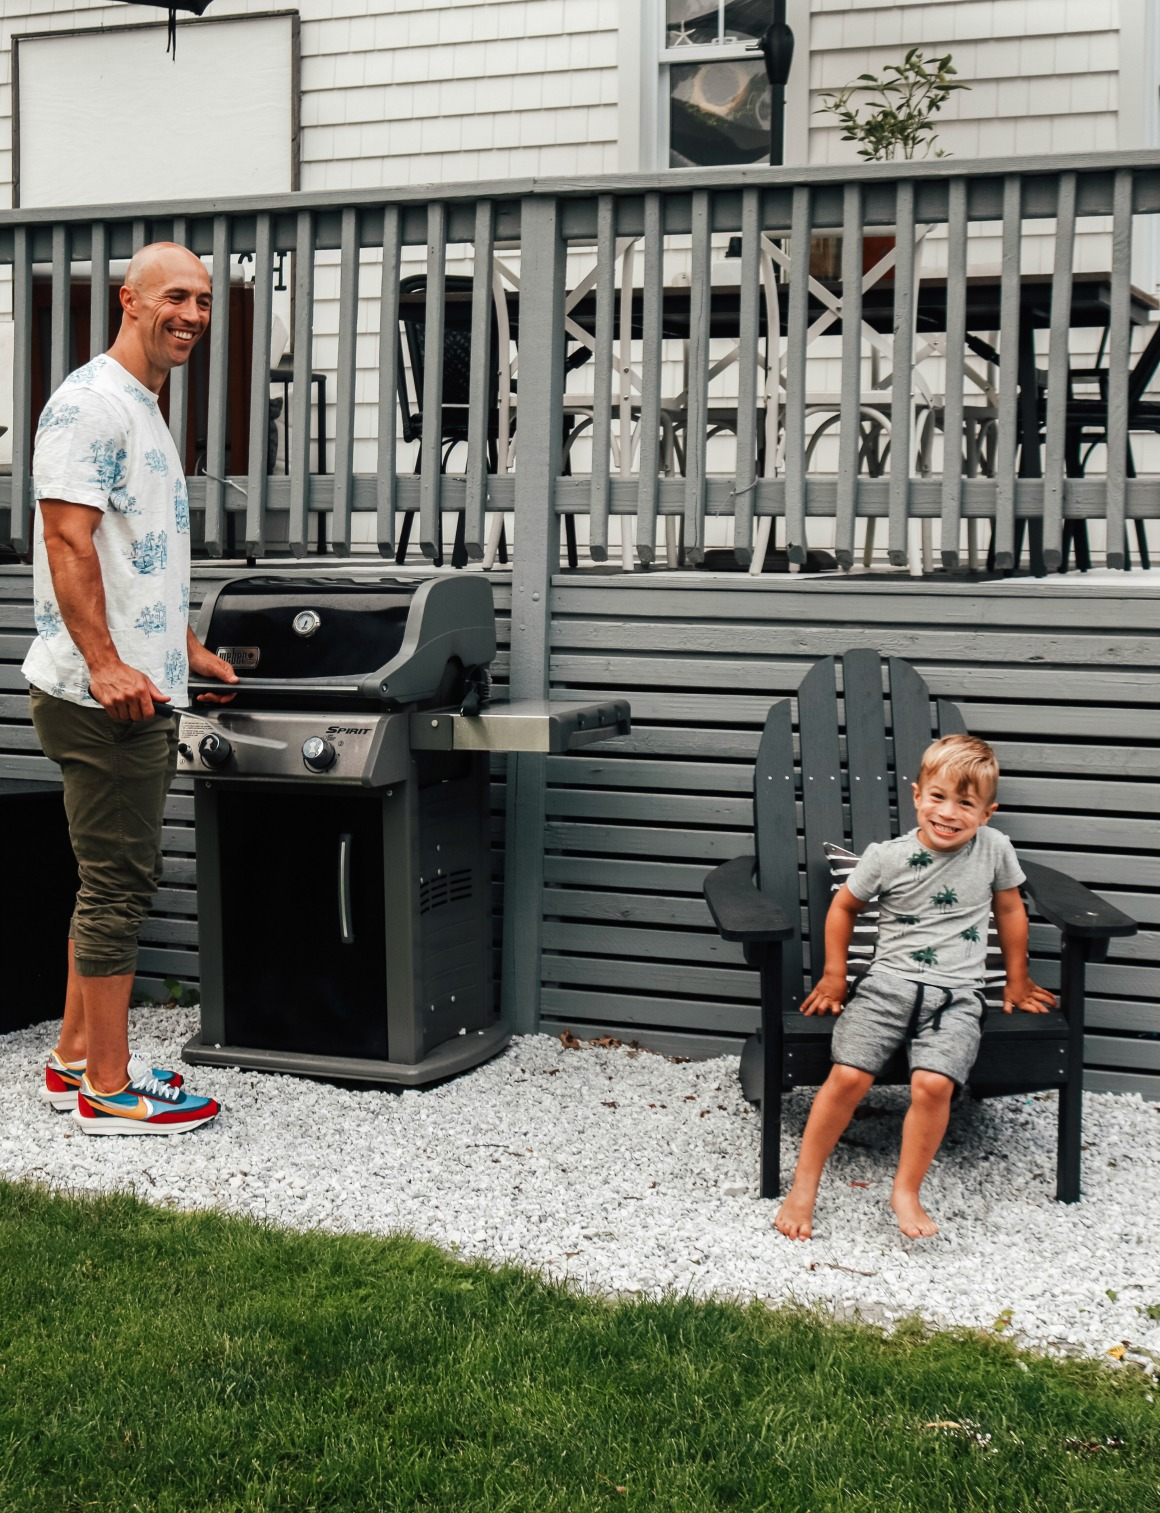 Favorite Affordable Summer Things for Him